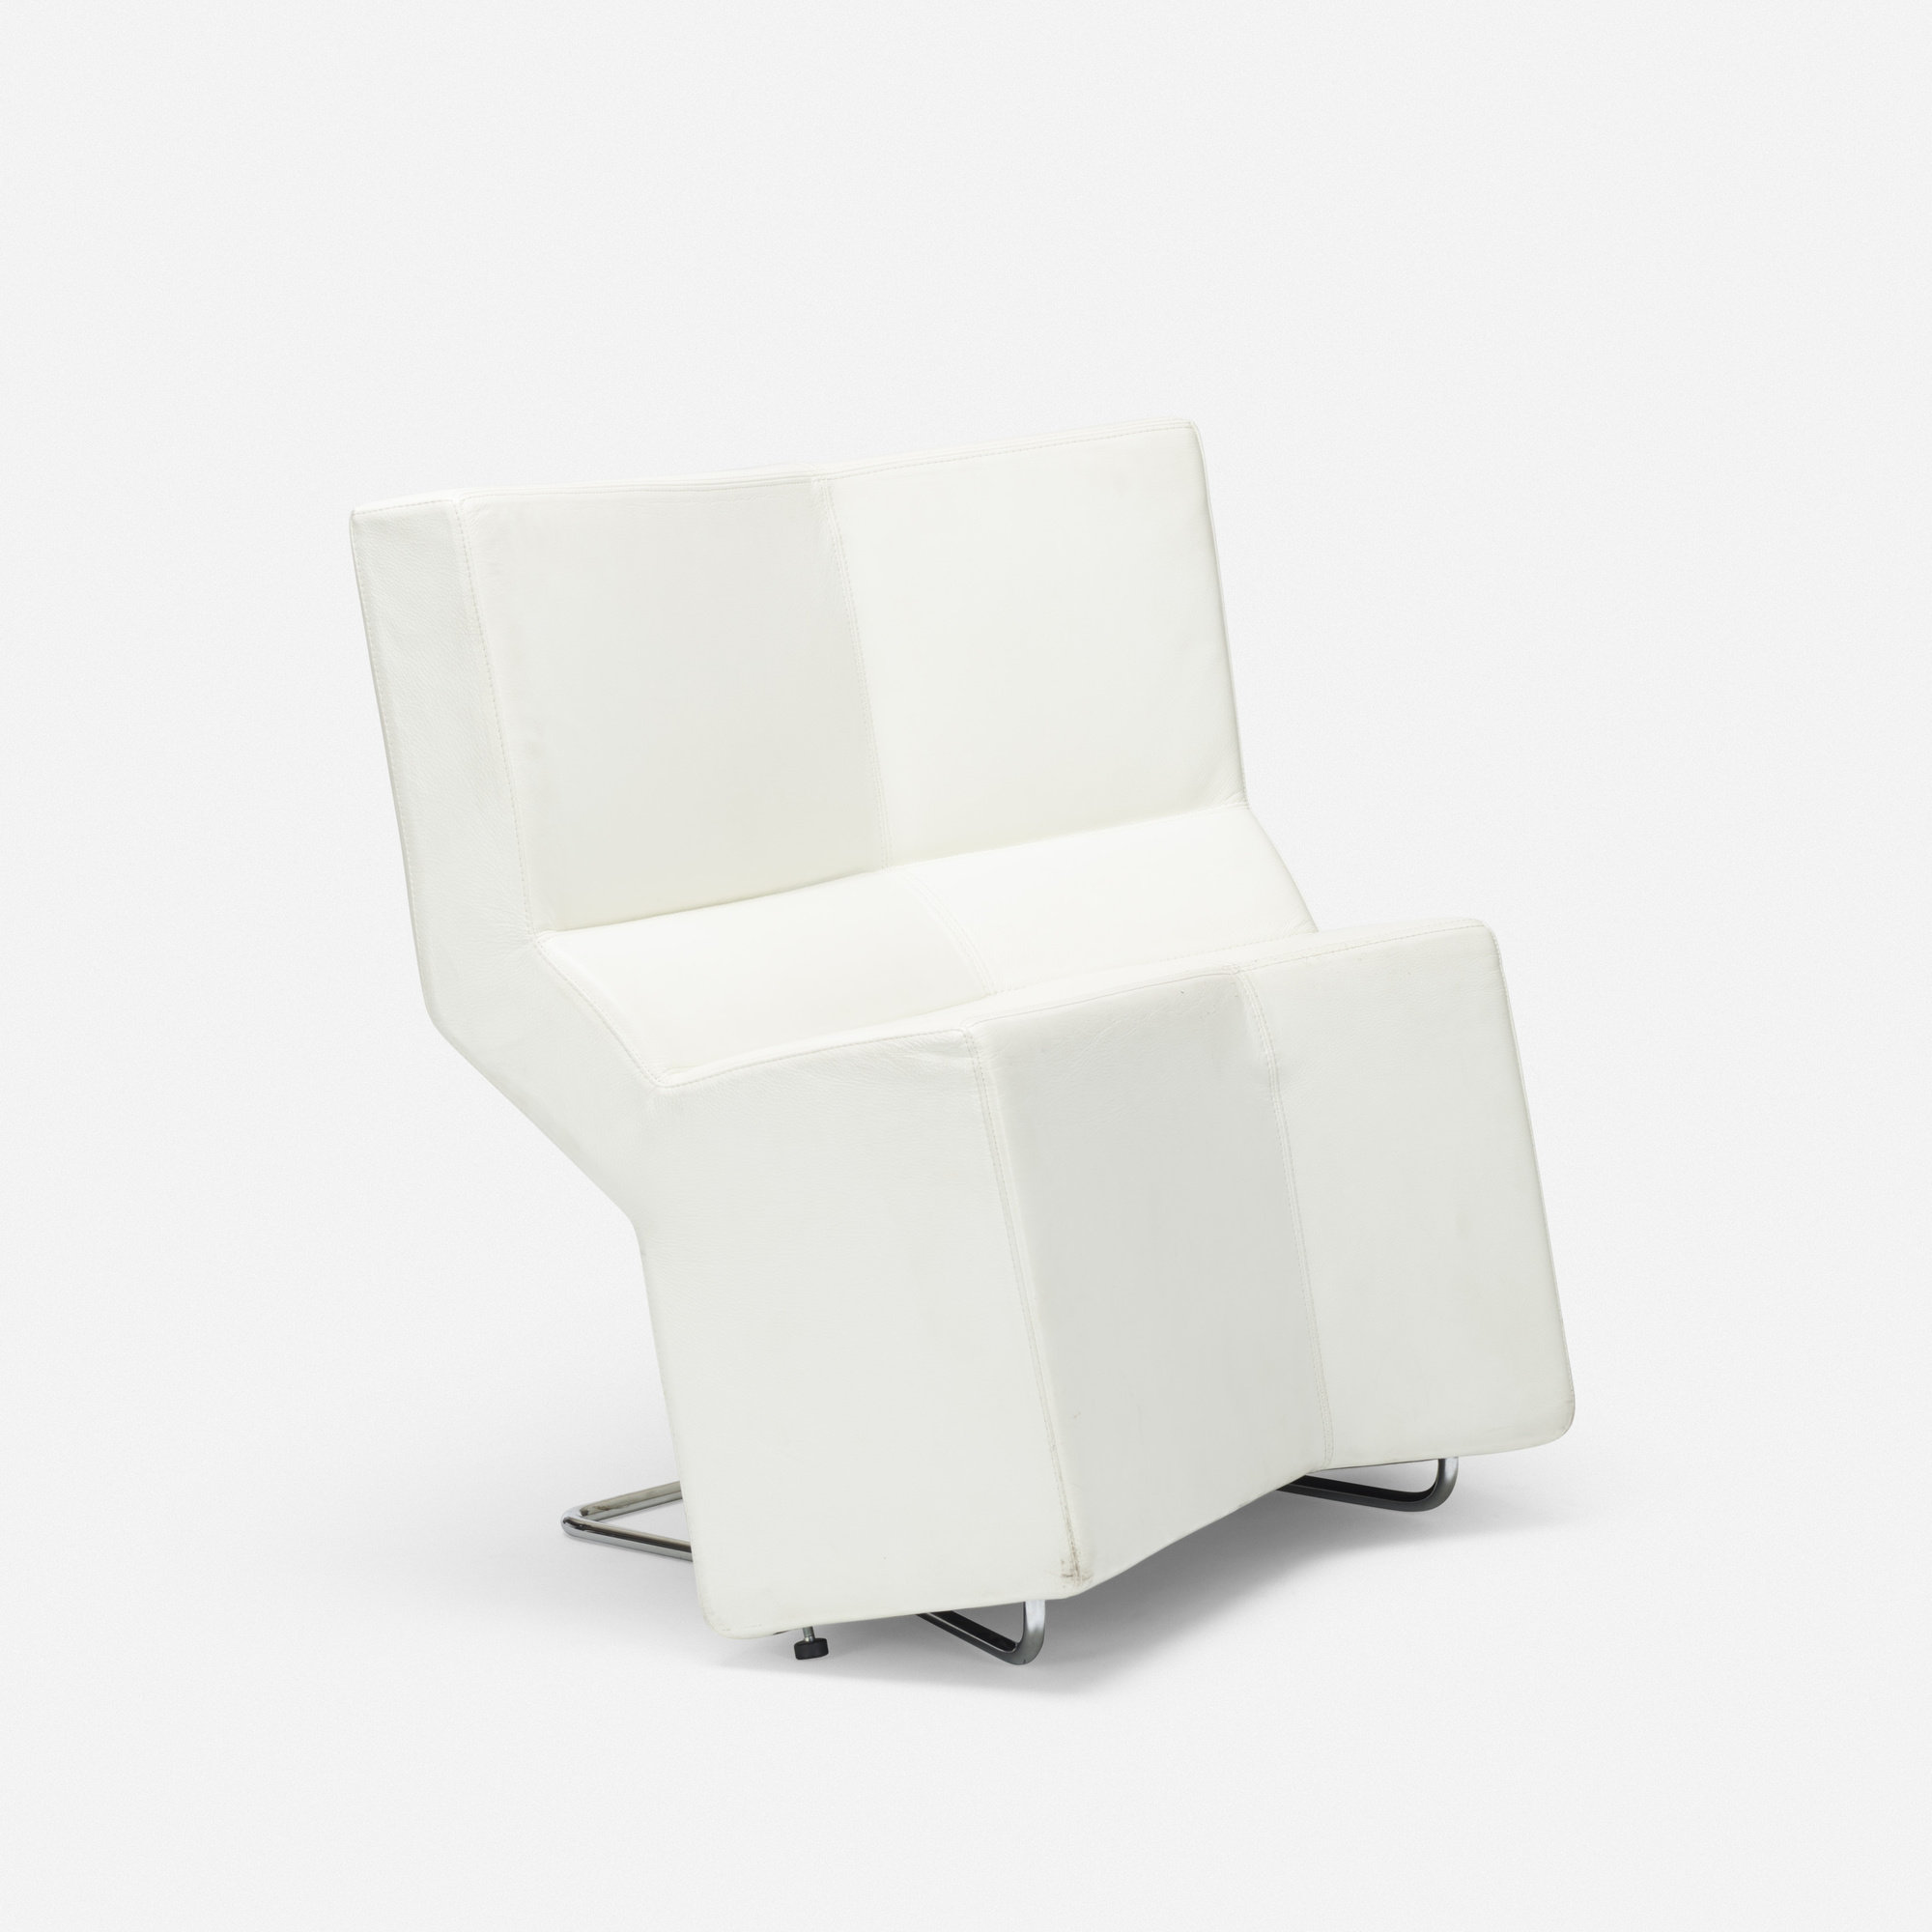 406: Konstantin Grcic / Chaos chair (1 of 2)